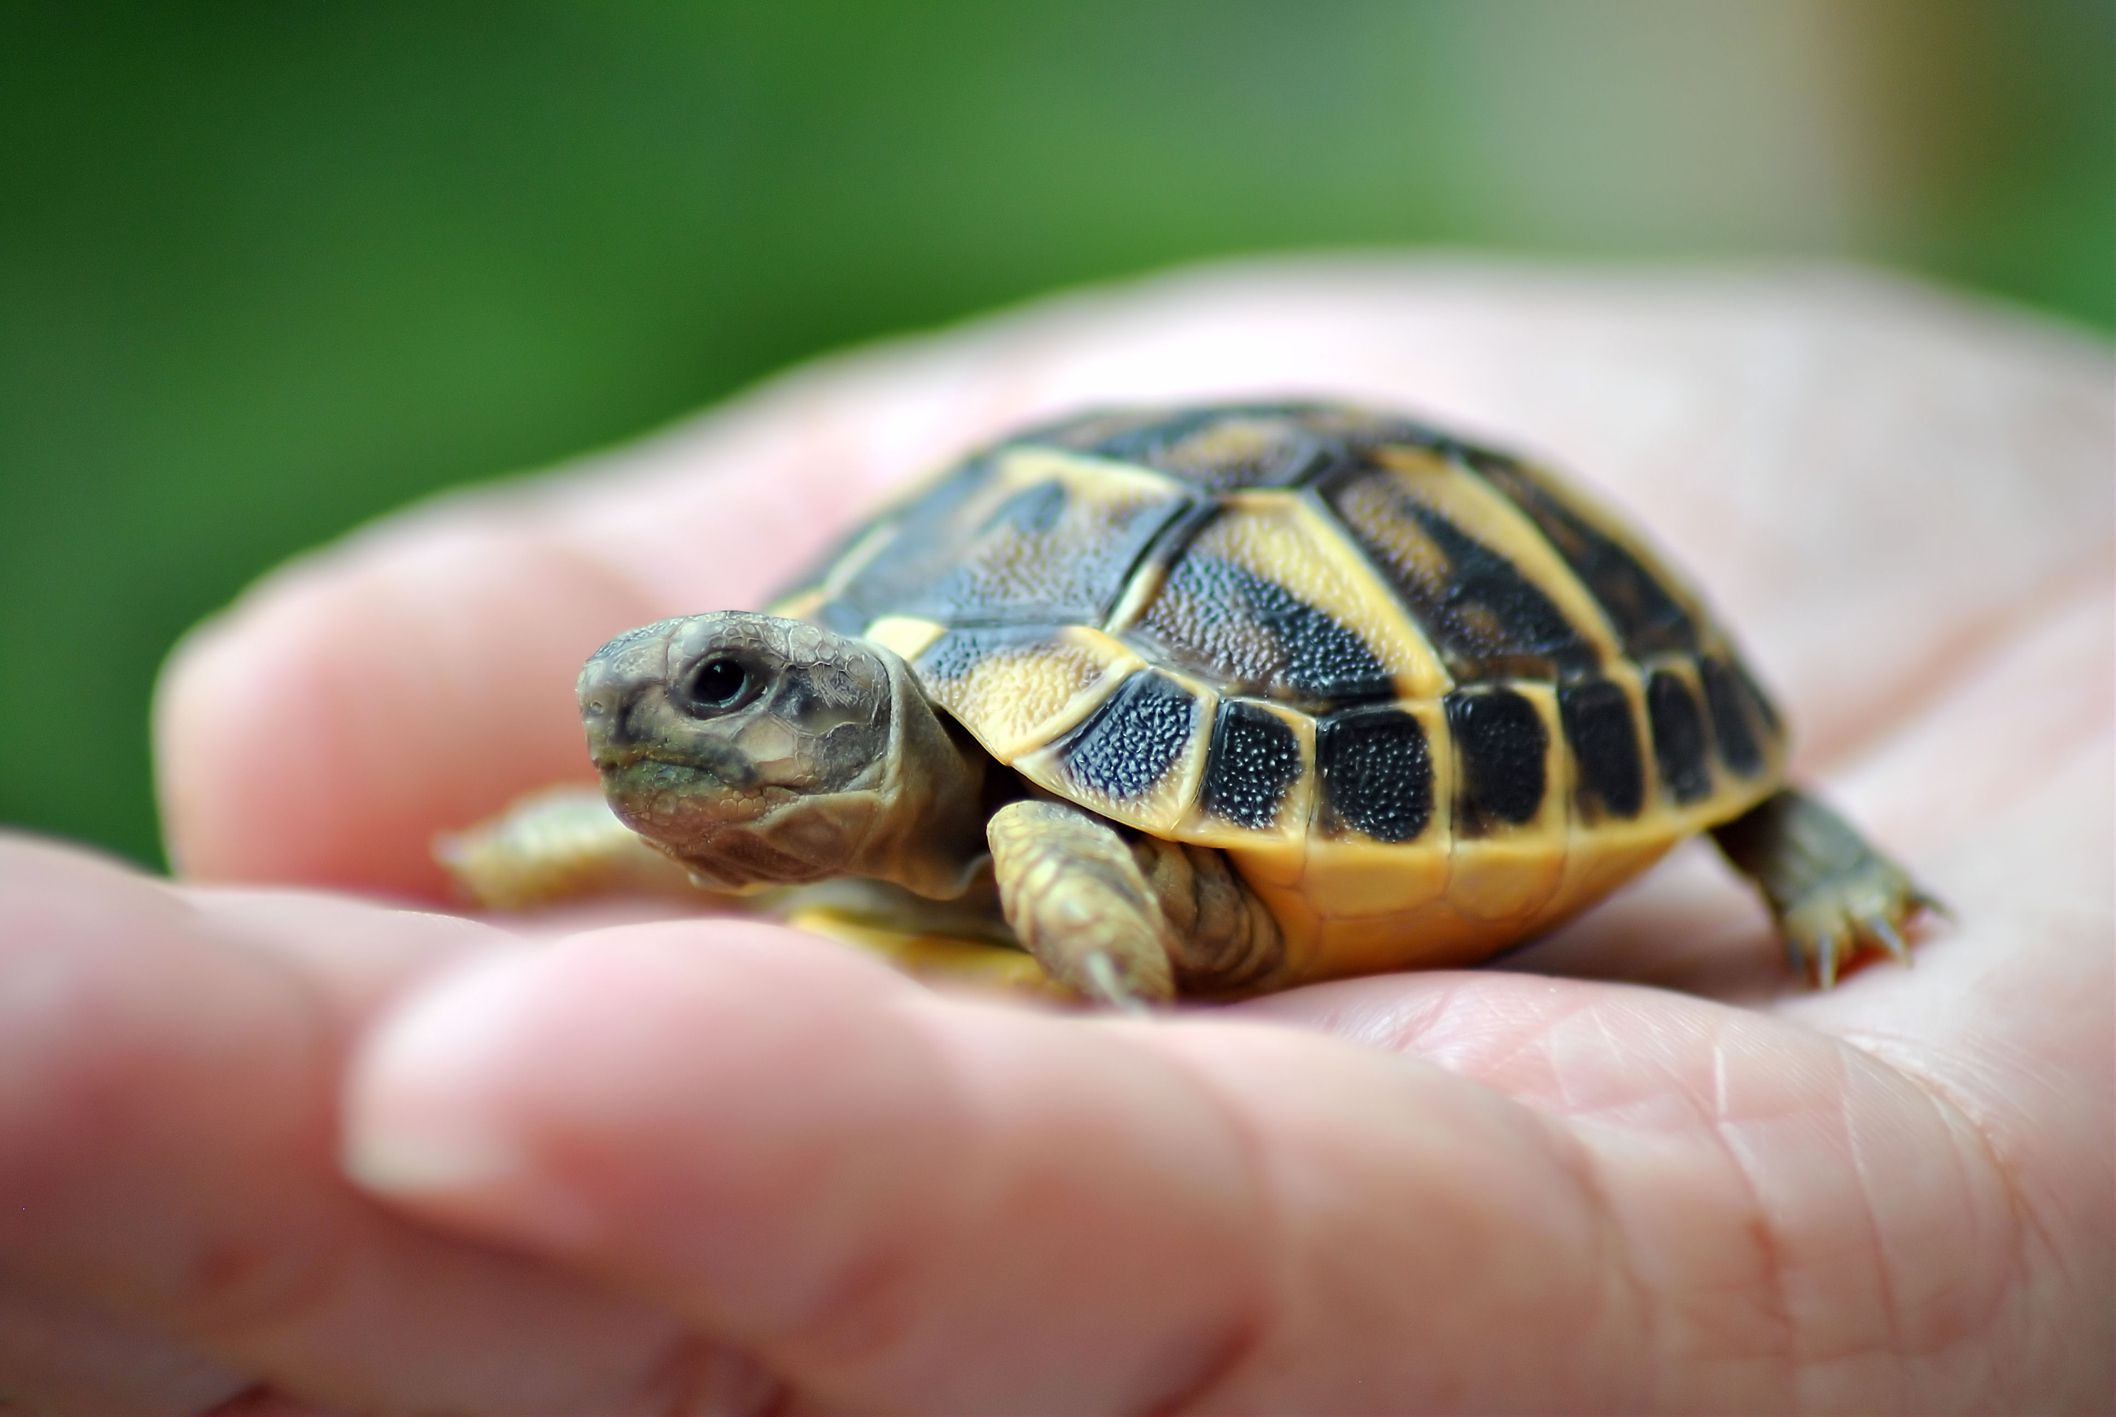 A Umbra Rasa (Penumbra) - Página 22 Pet-turtle-GettyImages-163253309-58da61e53df78c516256c1c6